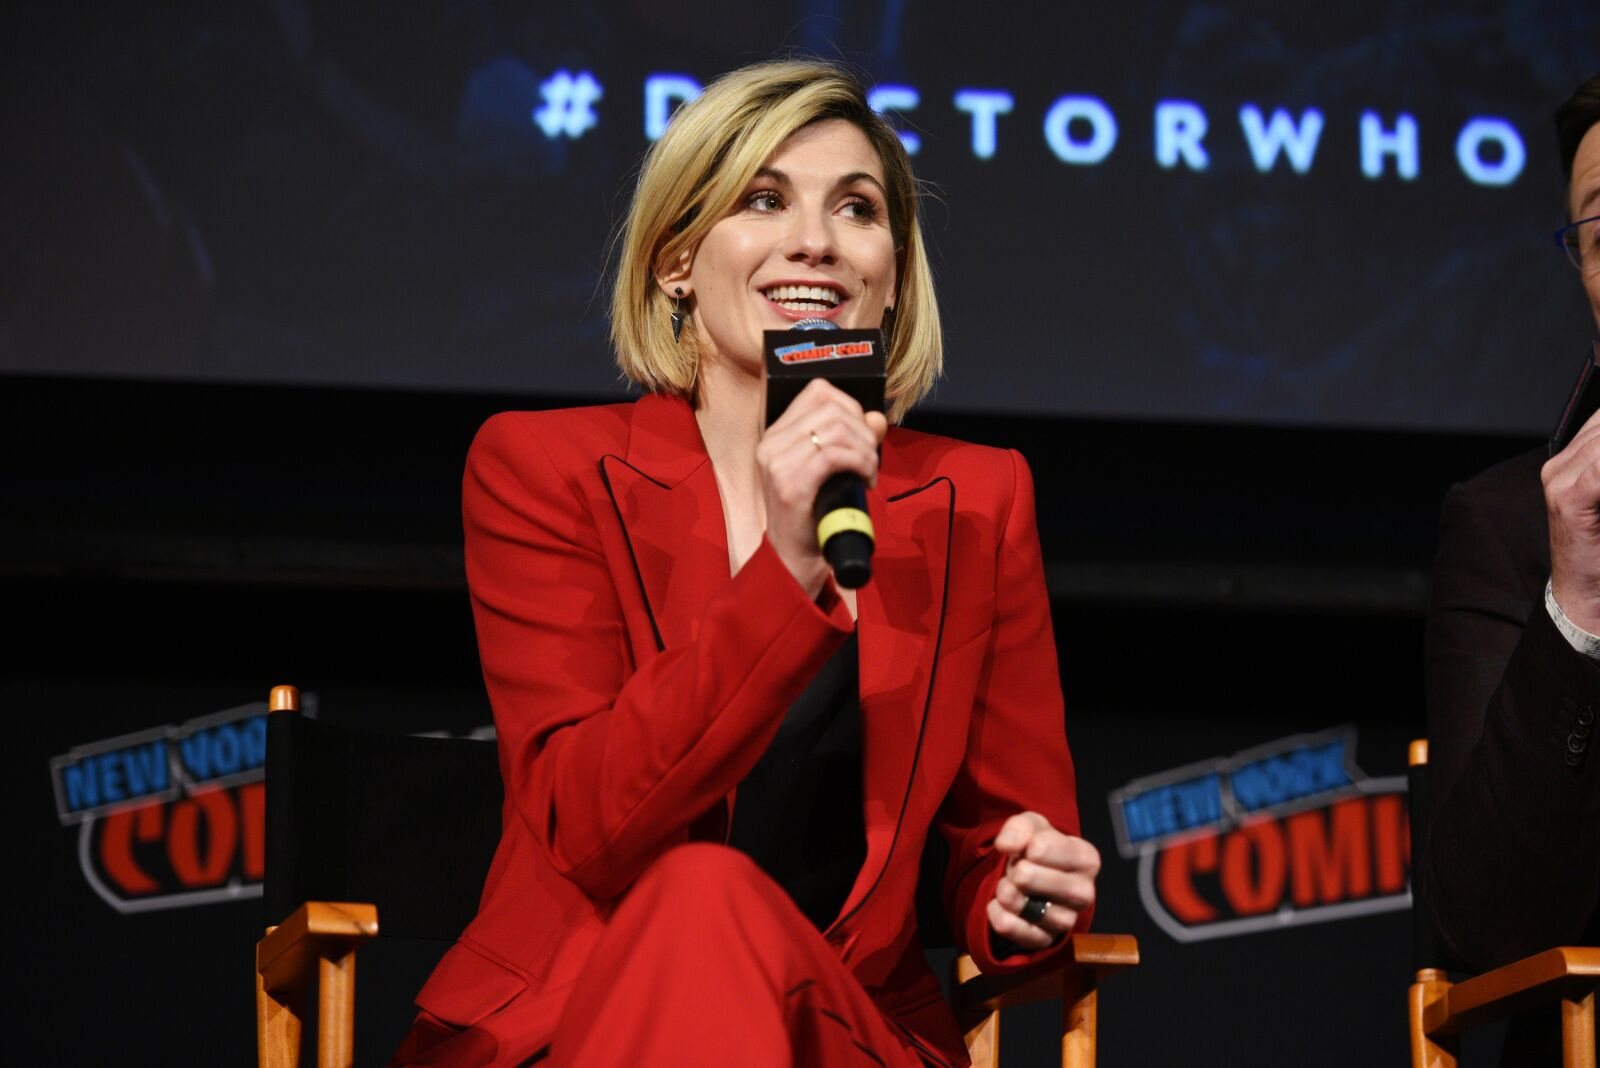 Doctor Who star Jodie Whittaker is adorable to watch when Coldplay surprise her